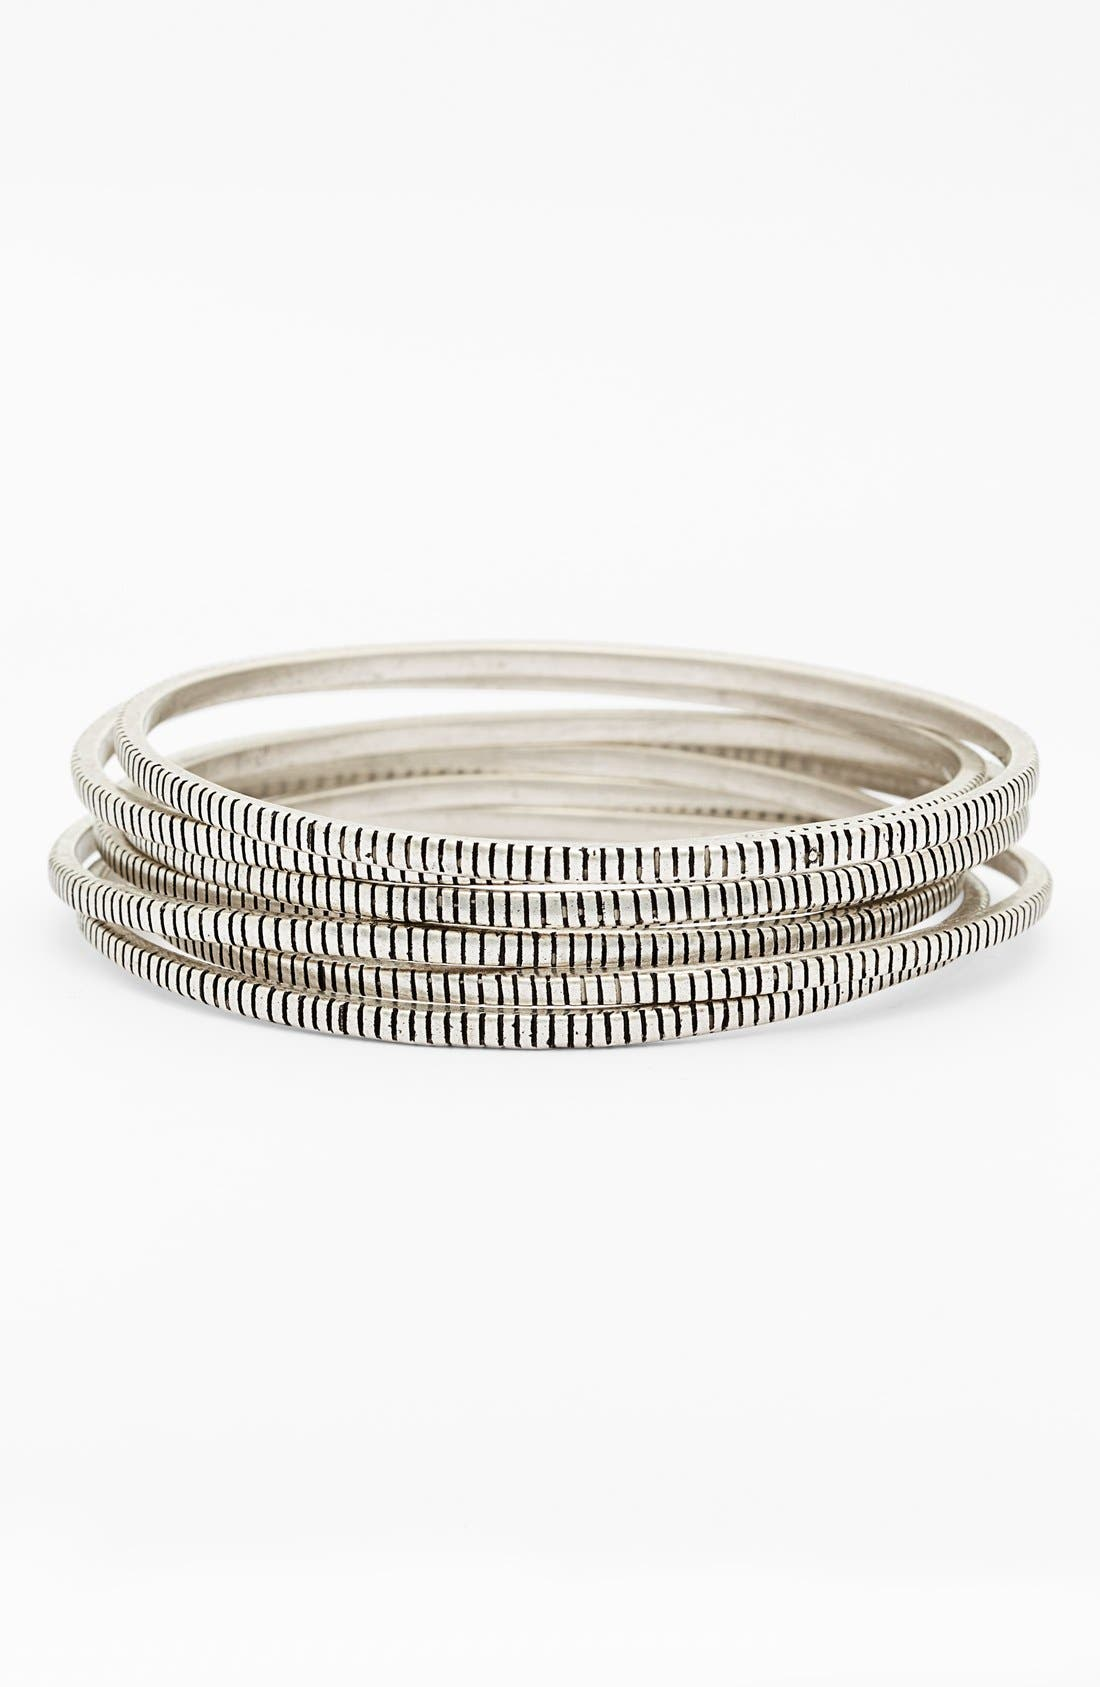 Main Image - Rebecca Minkoff 'Jewel Box' Etched Bangles (Set of 7)